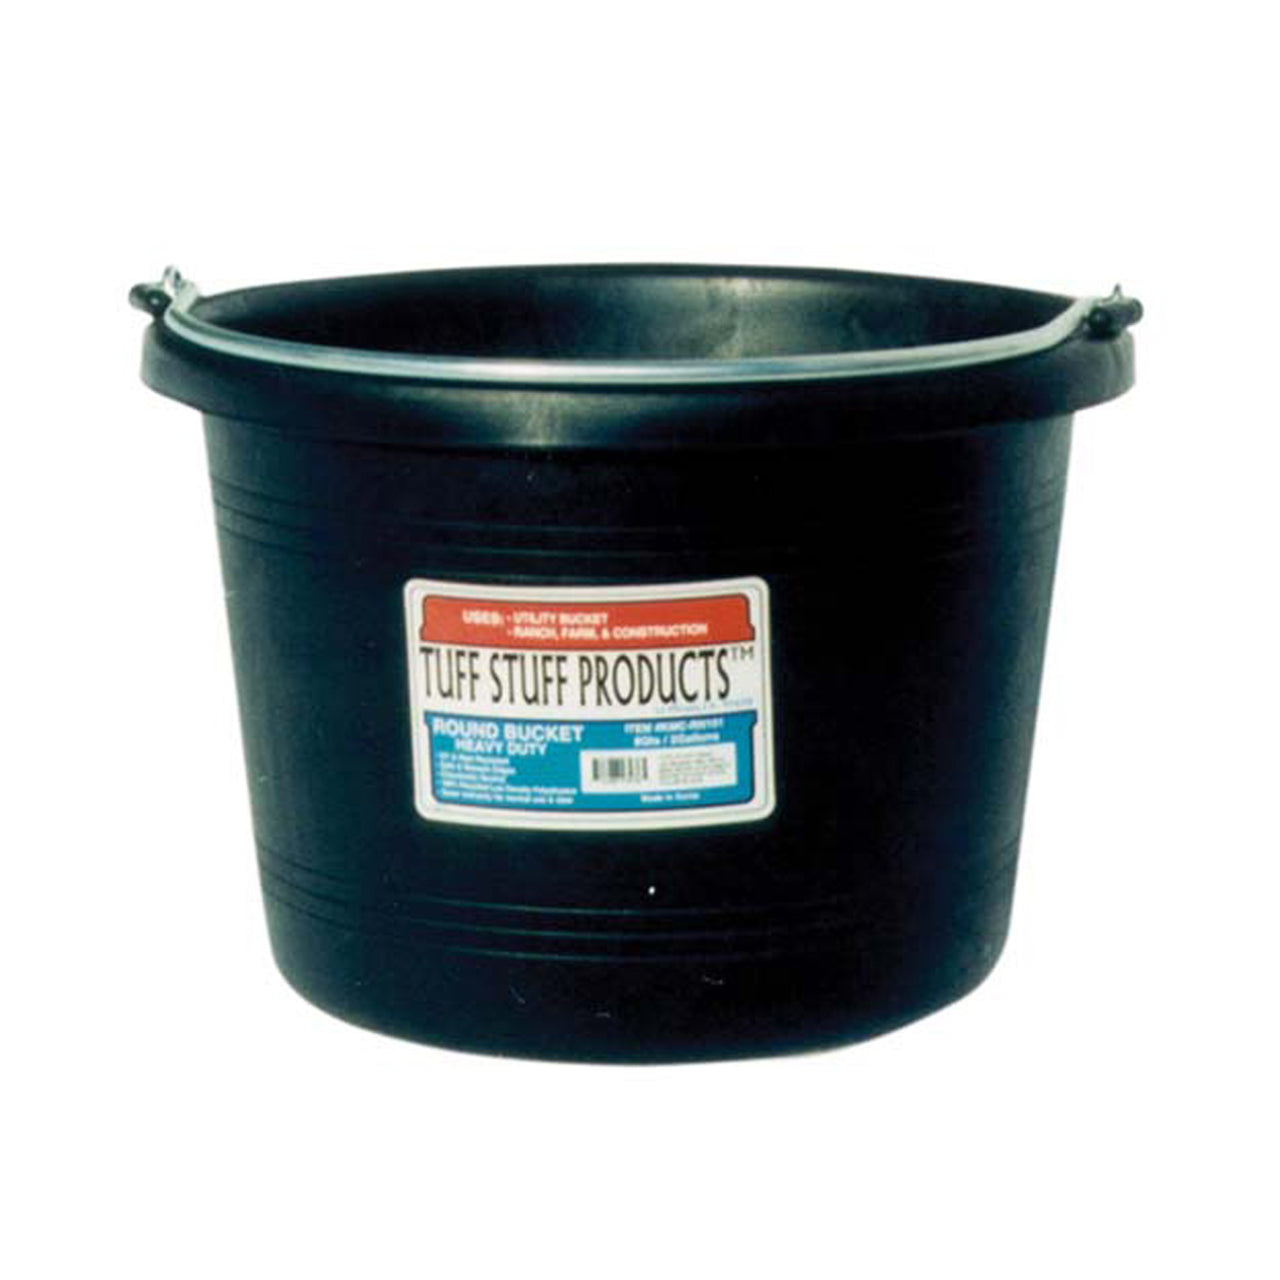 Tuff Stuff Round Bucket 8 Qts - Black - Buckets Pails Feeders Scoops Tubs Bottles Tuff Stuff - Canada